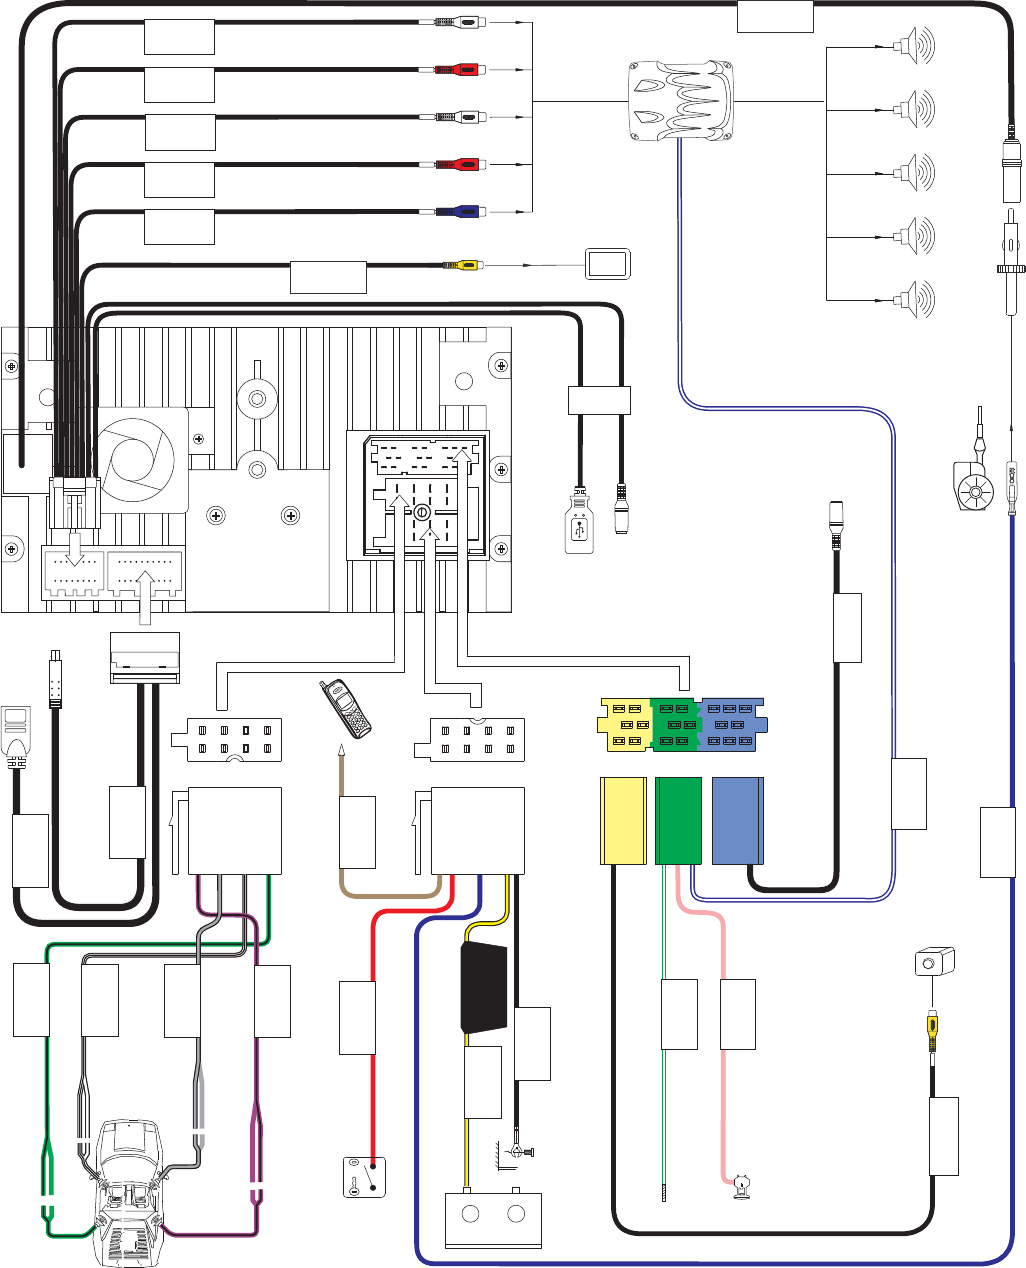 34fbcac4 7bef 4eb8 b34c 690a937048d0 bg4 jensen wiring diagram jensen vm9215bt update \u2022 wiring diagrams j jensen uv10 wiring harness diagram at love-stories.co